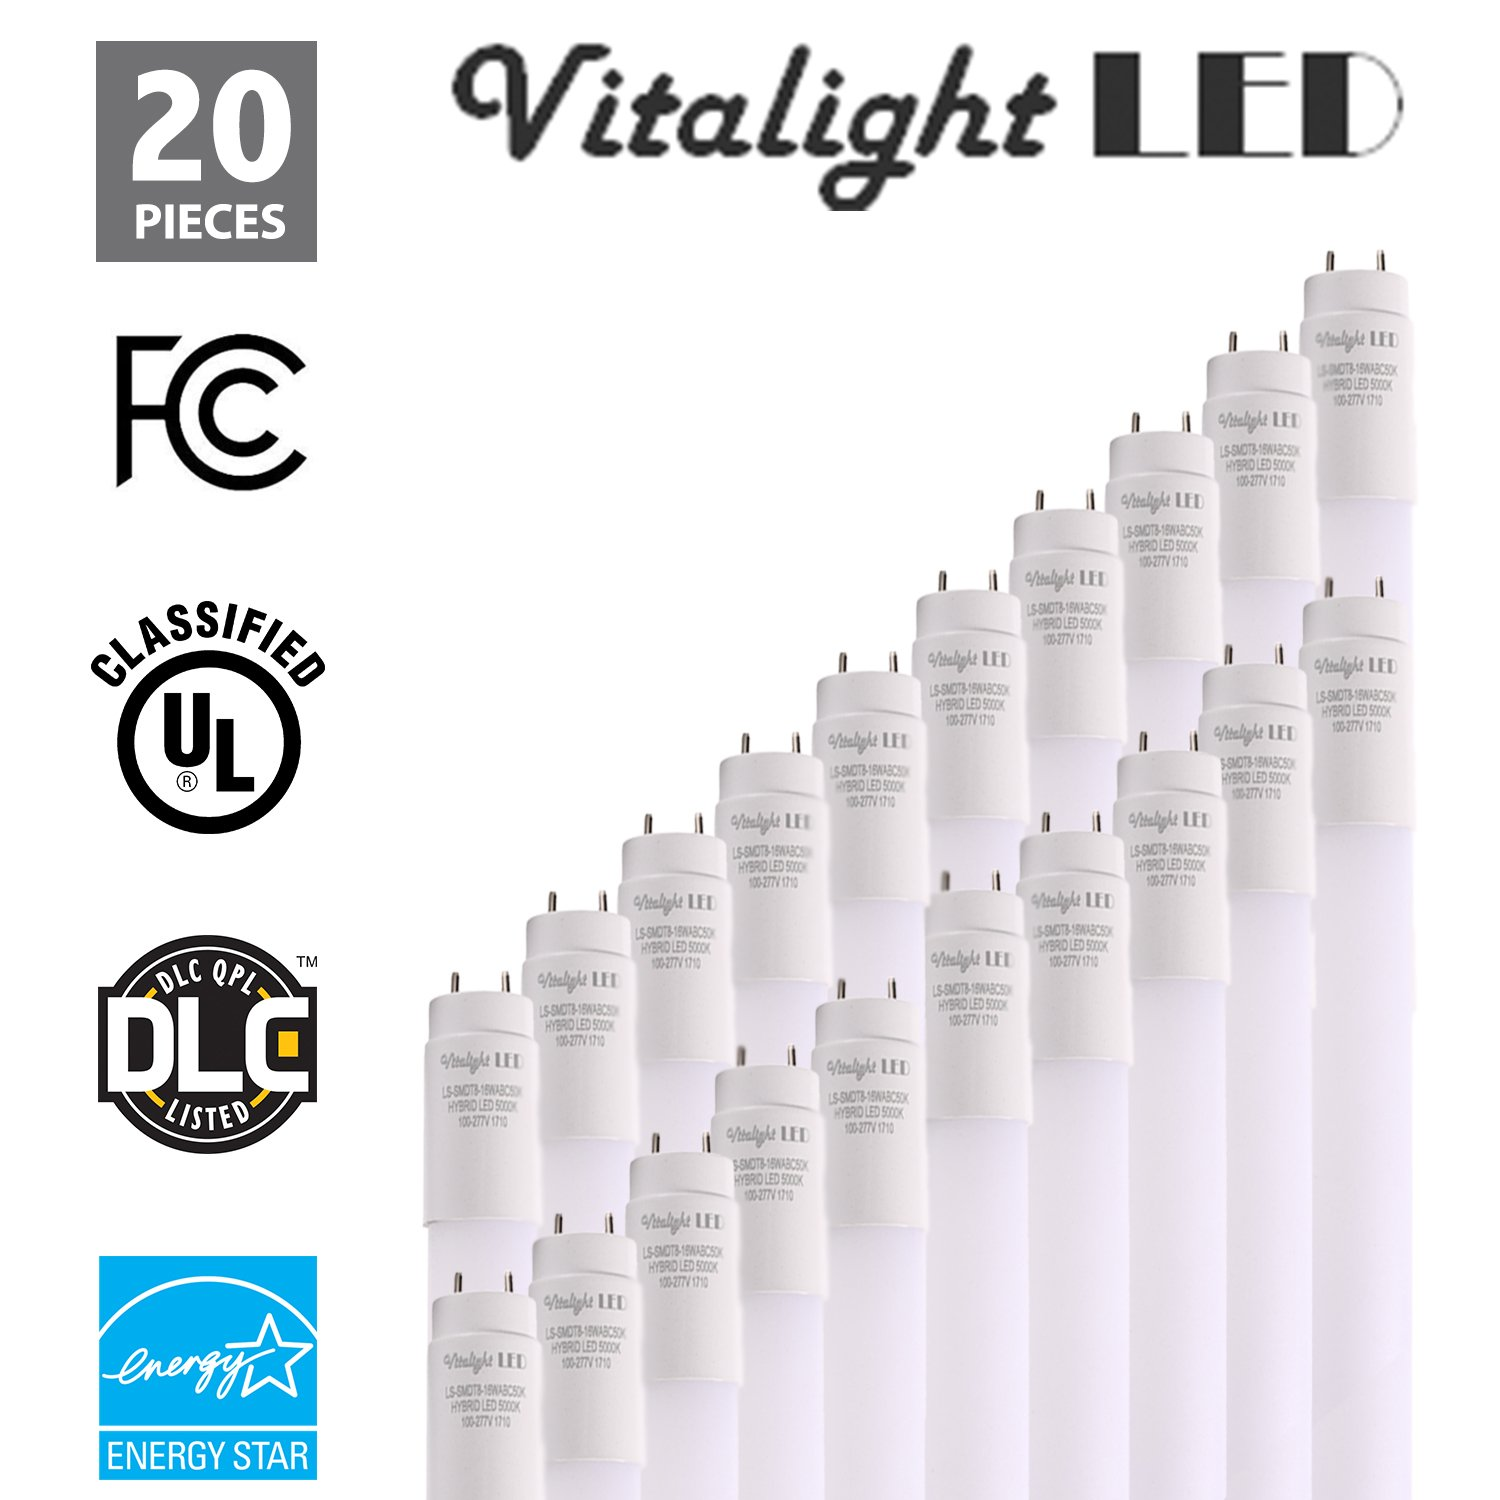 (20 Pack) PLUG AND PLAY - T8 LED Light Tube, 4FT 18W (40W Replacement), 5000K (Daylight White), 2400lm, Frosted Cover, Dual-End & Single-End Powered, Works with/without ballast, Shatterproof, UL & DLC